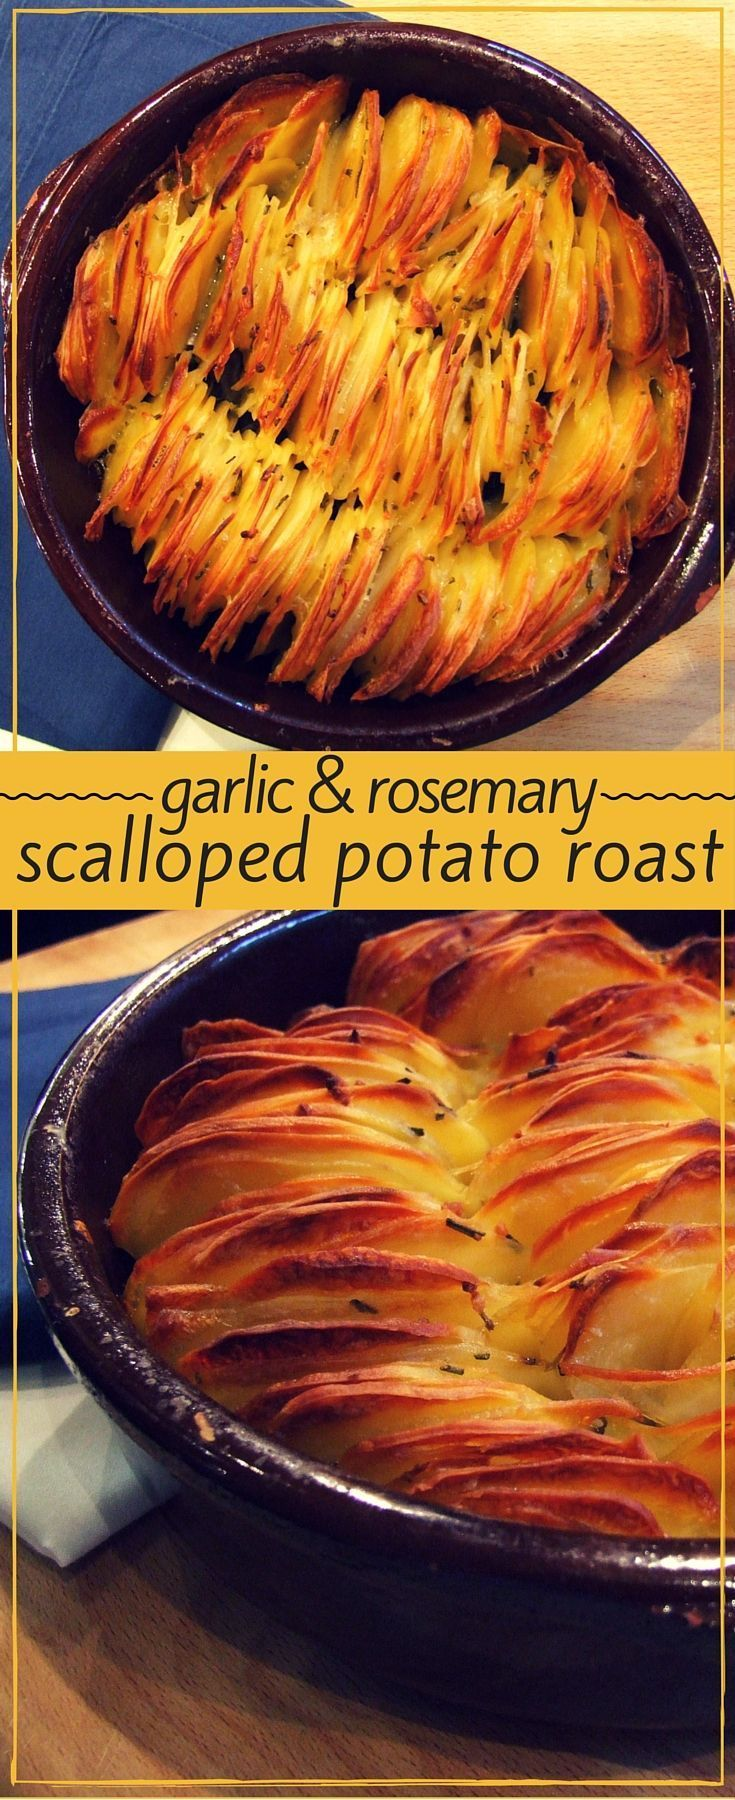 Easy & delicious garlic & rosemary scalloped potato roast. Prepare ahead and bake later. Perfect!